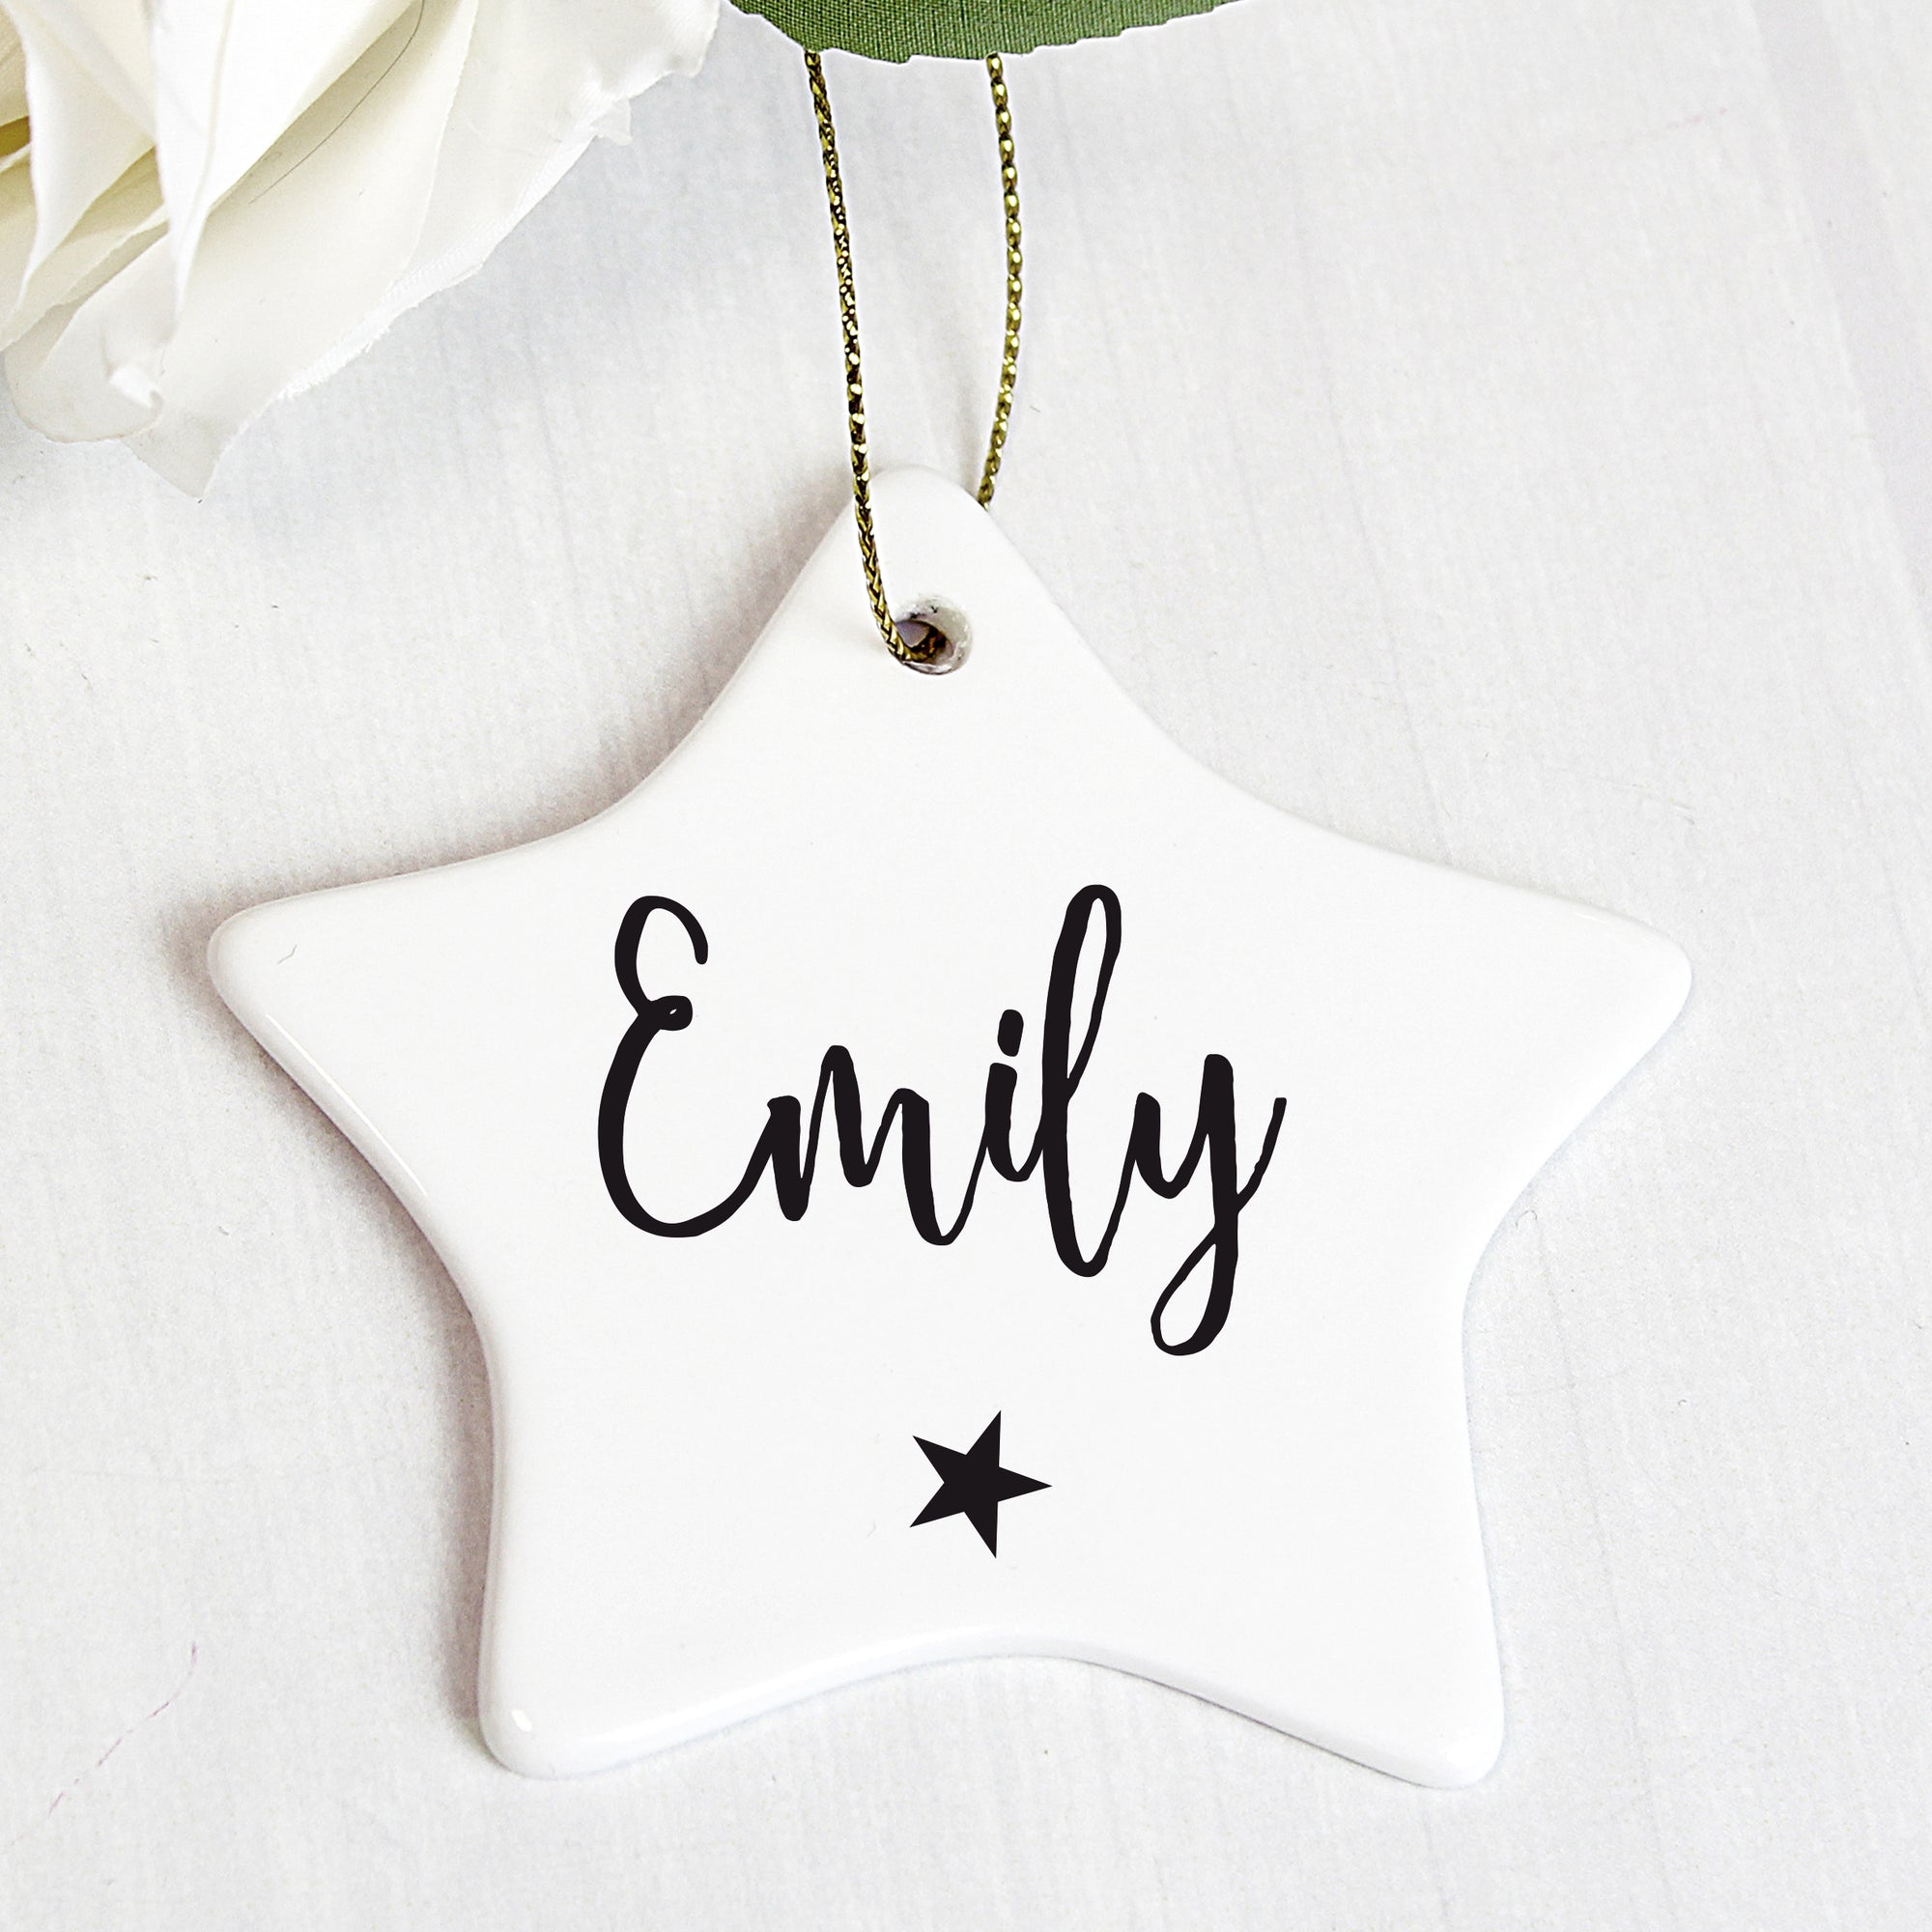 Personalised white ceramic star shaped Christmas decoration that comes with a string ready to hang. The front of the decoration can be personalised with a name of up to 12 characters which will be printed in a black modern hand written style font and there is a small black star printed below the name.